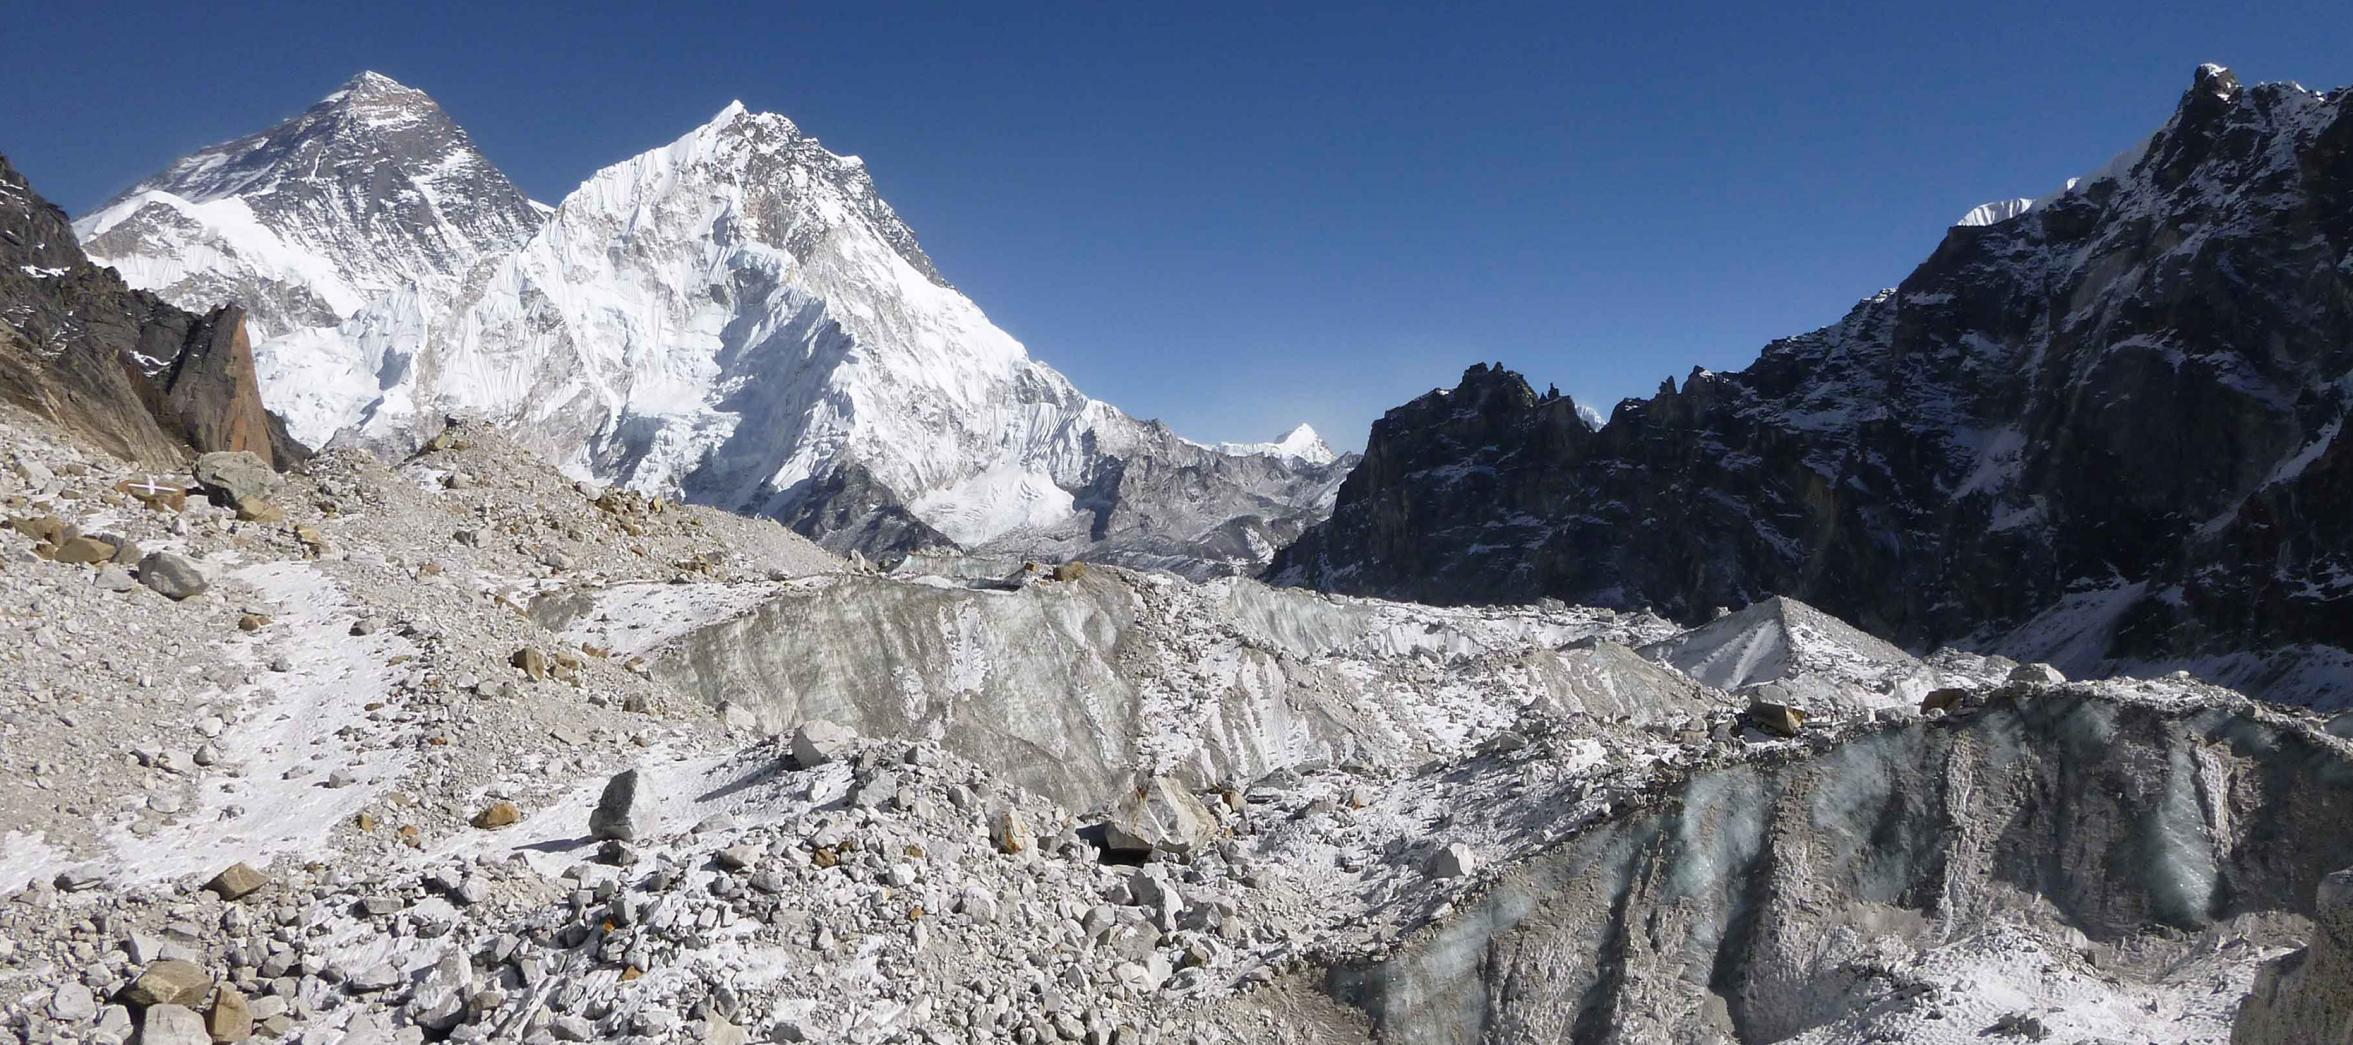 The Changri Nup, a typical debris-covered glacier in the Everest region. The complex surface characteristics of the glacier include patches of rock debris and exposed ice cliffs.